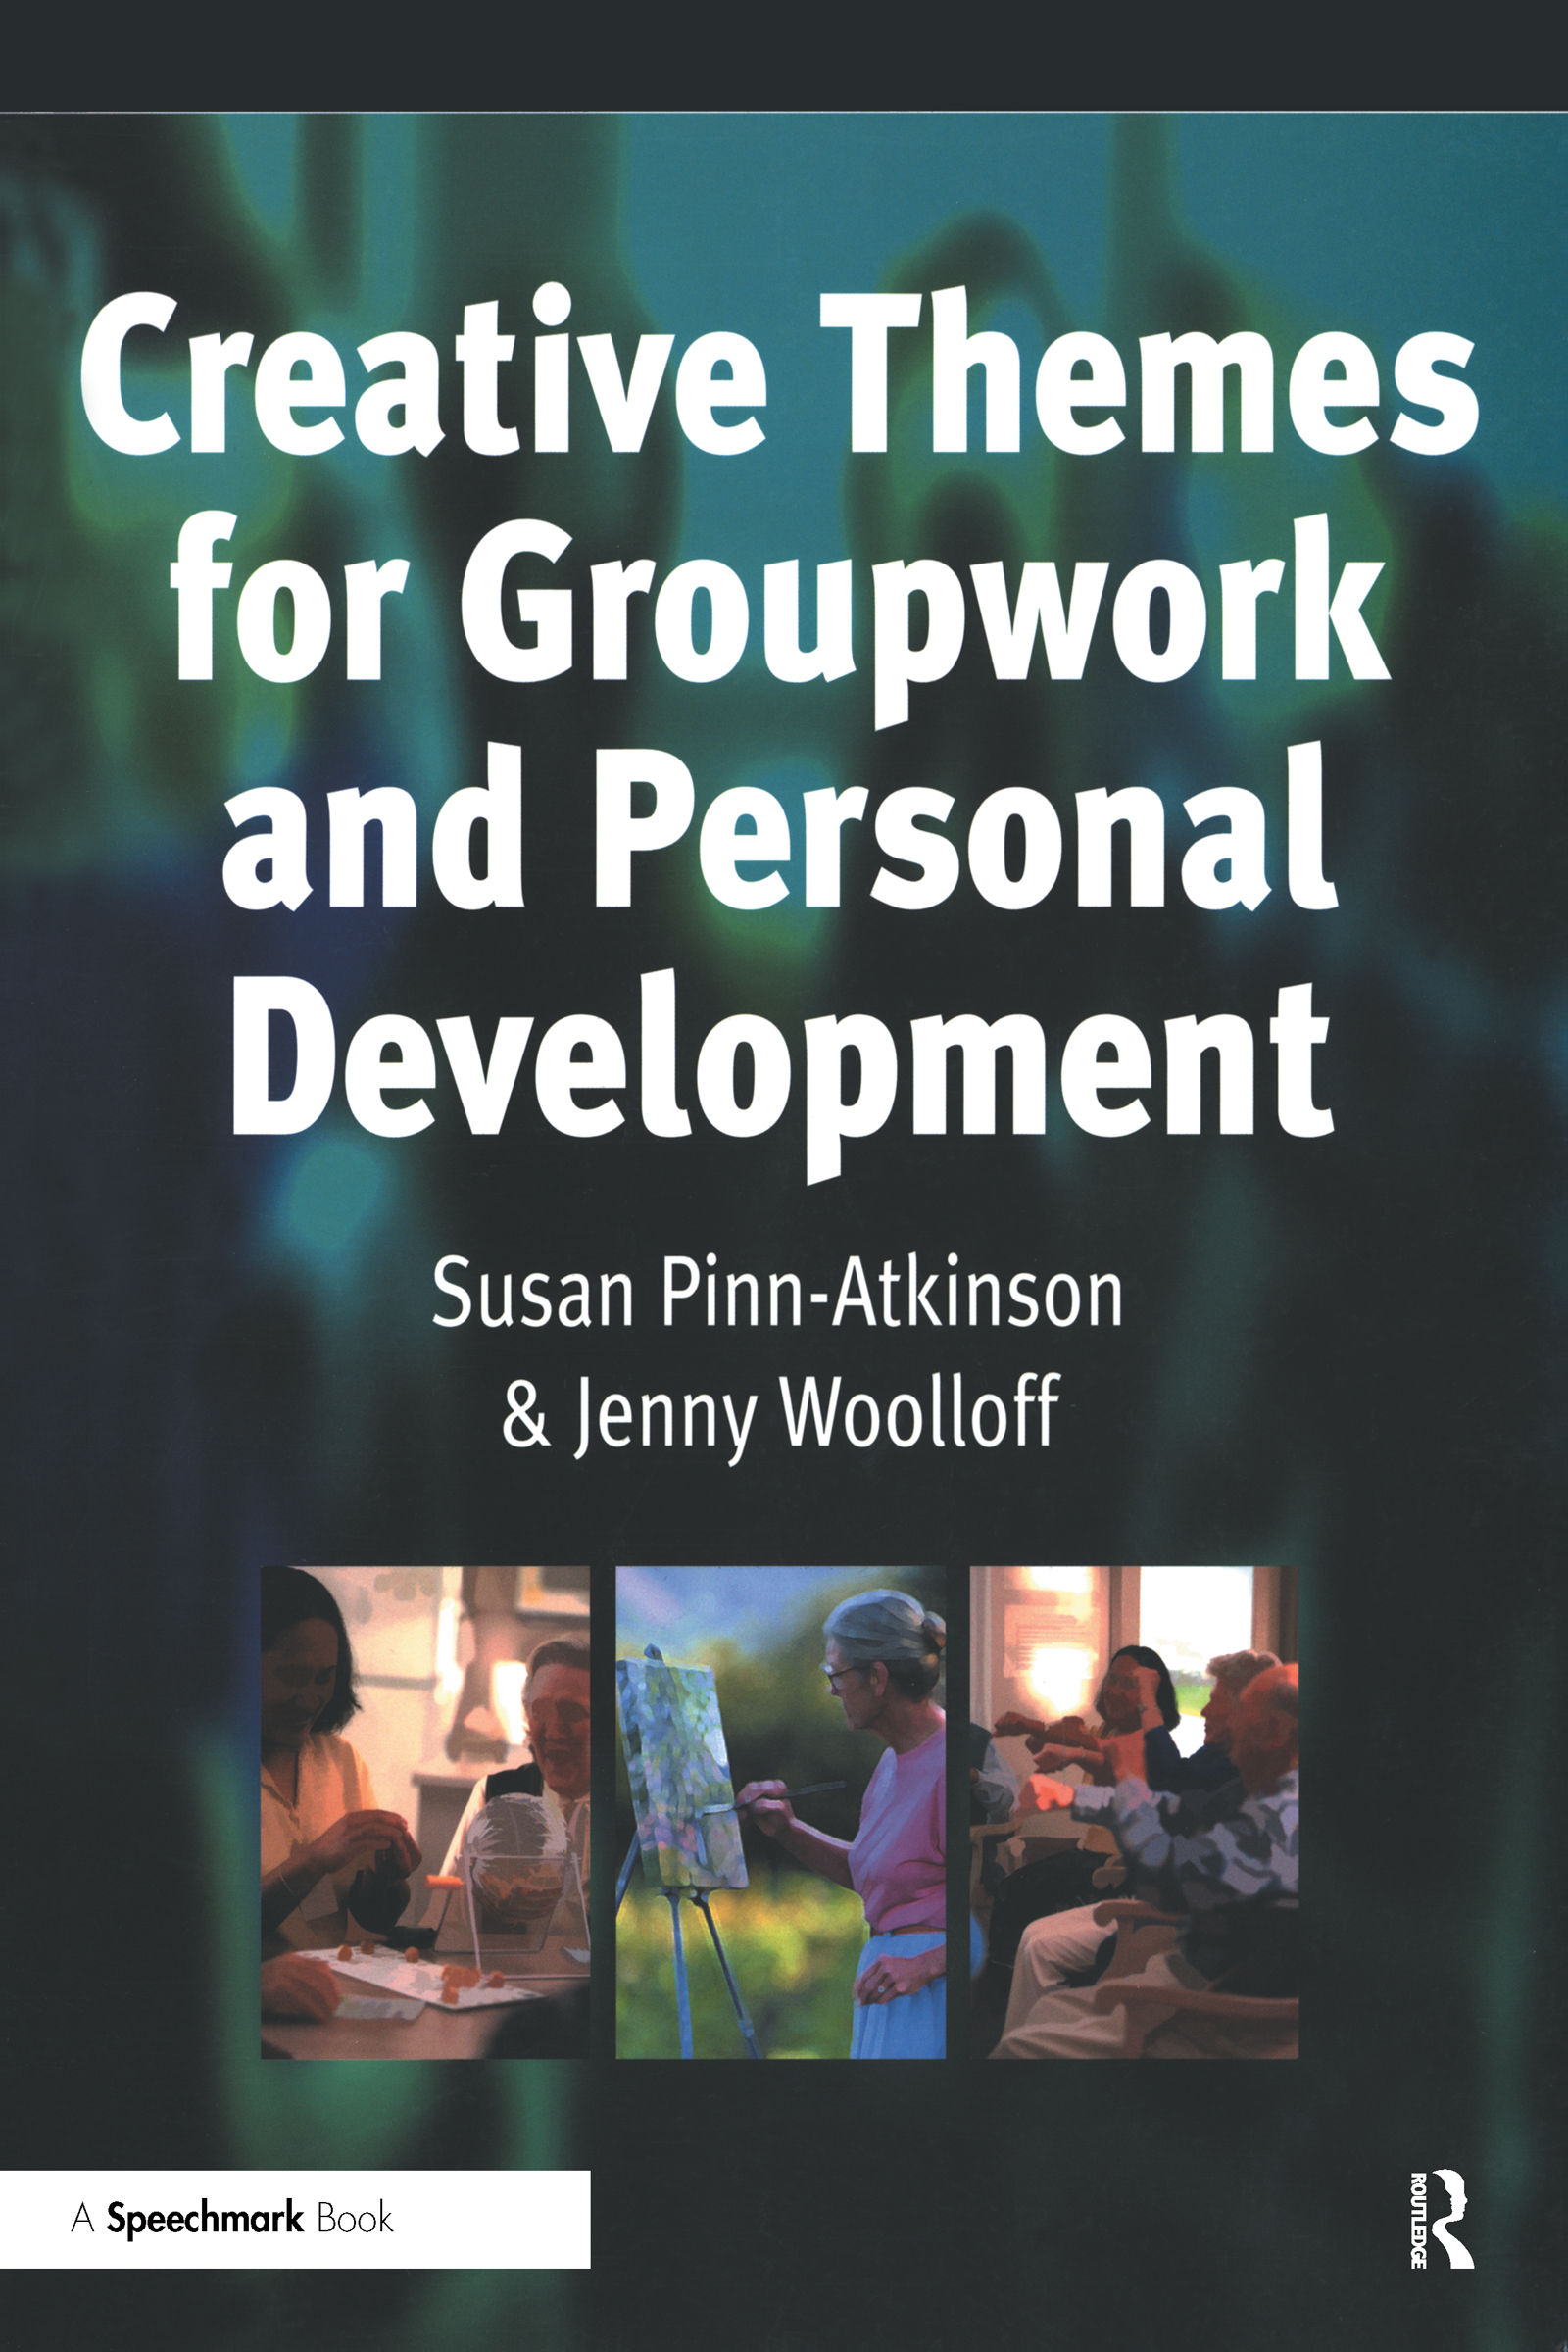 Creative Themes for Groupwork and Personal Development